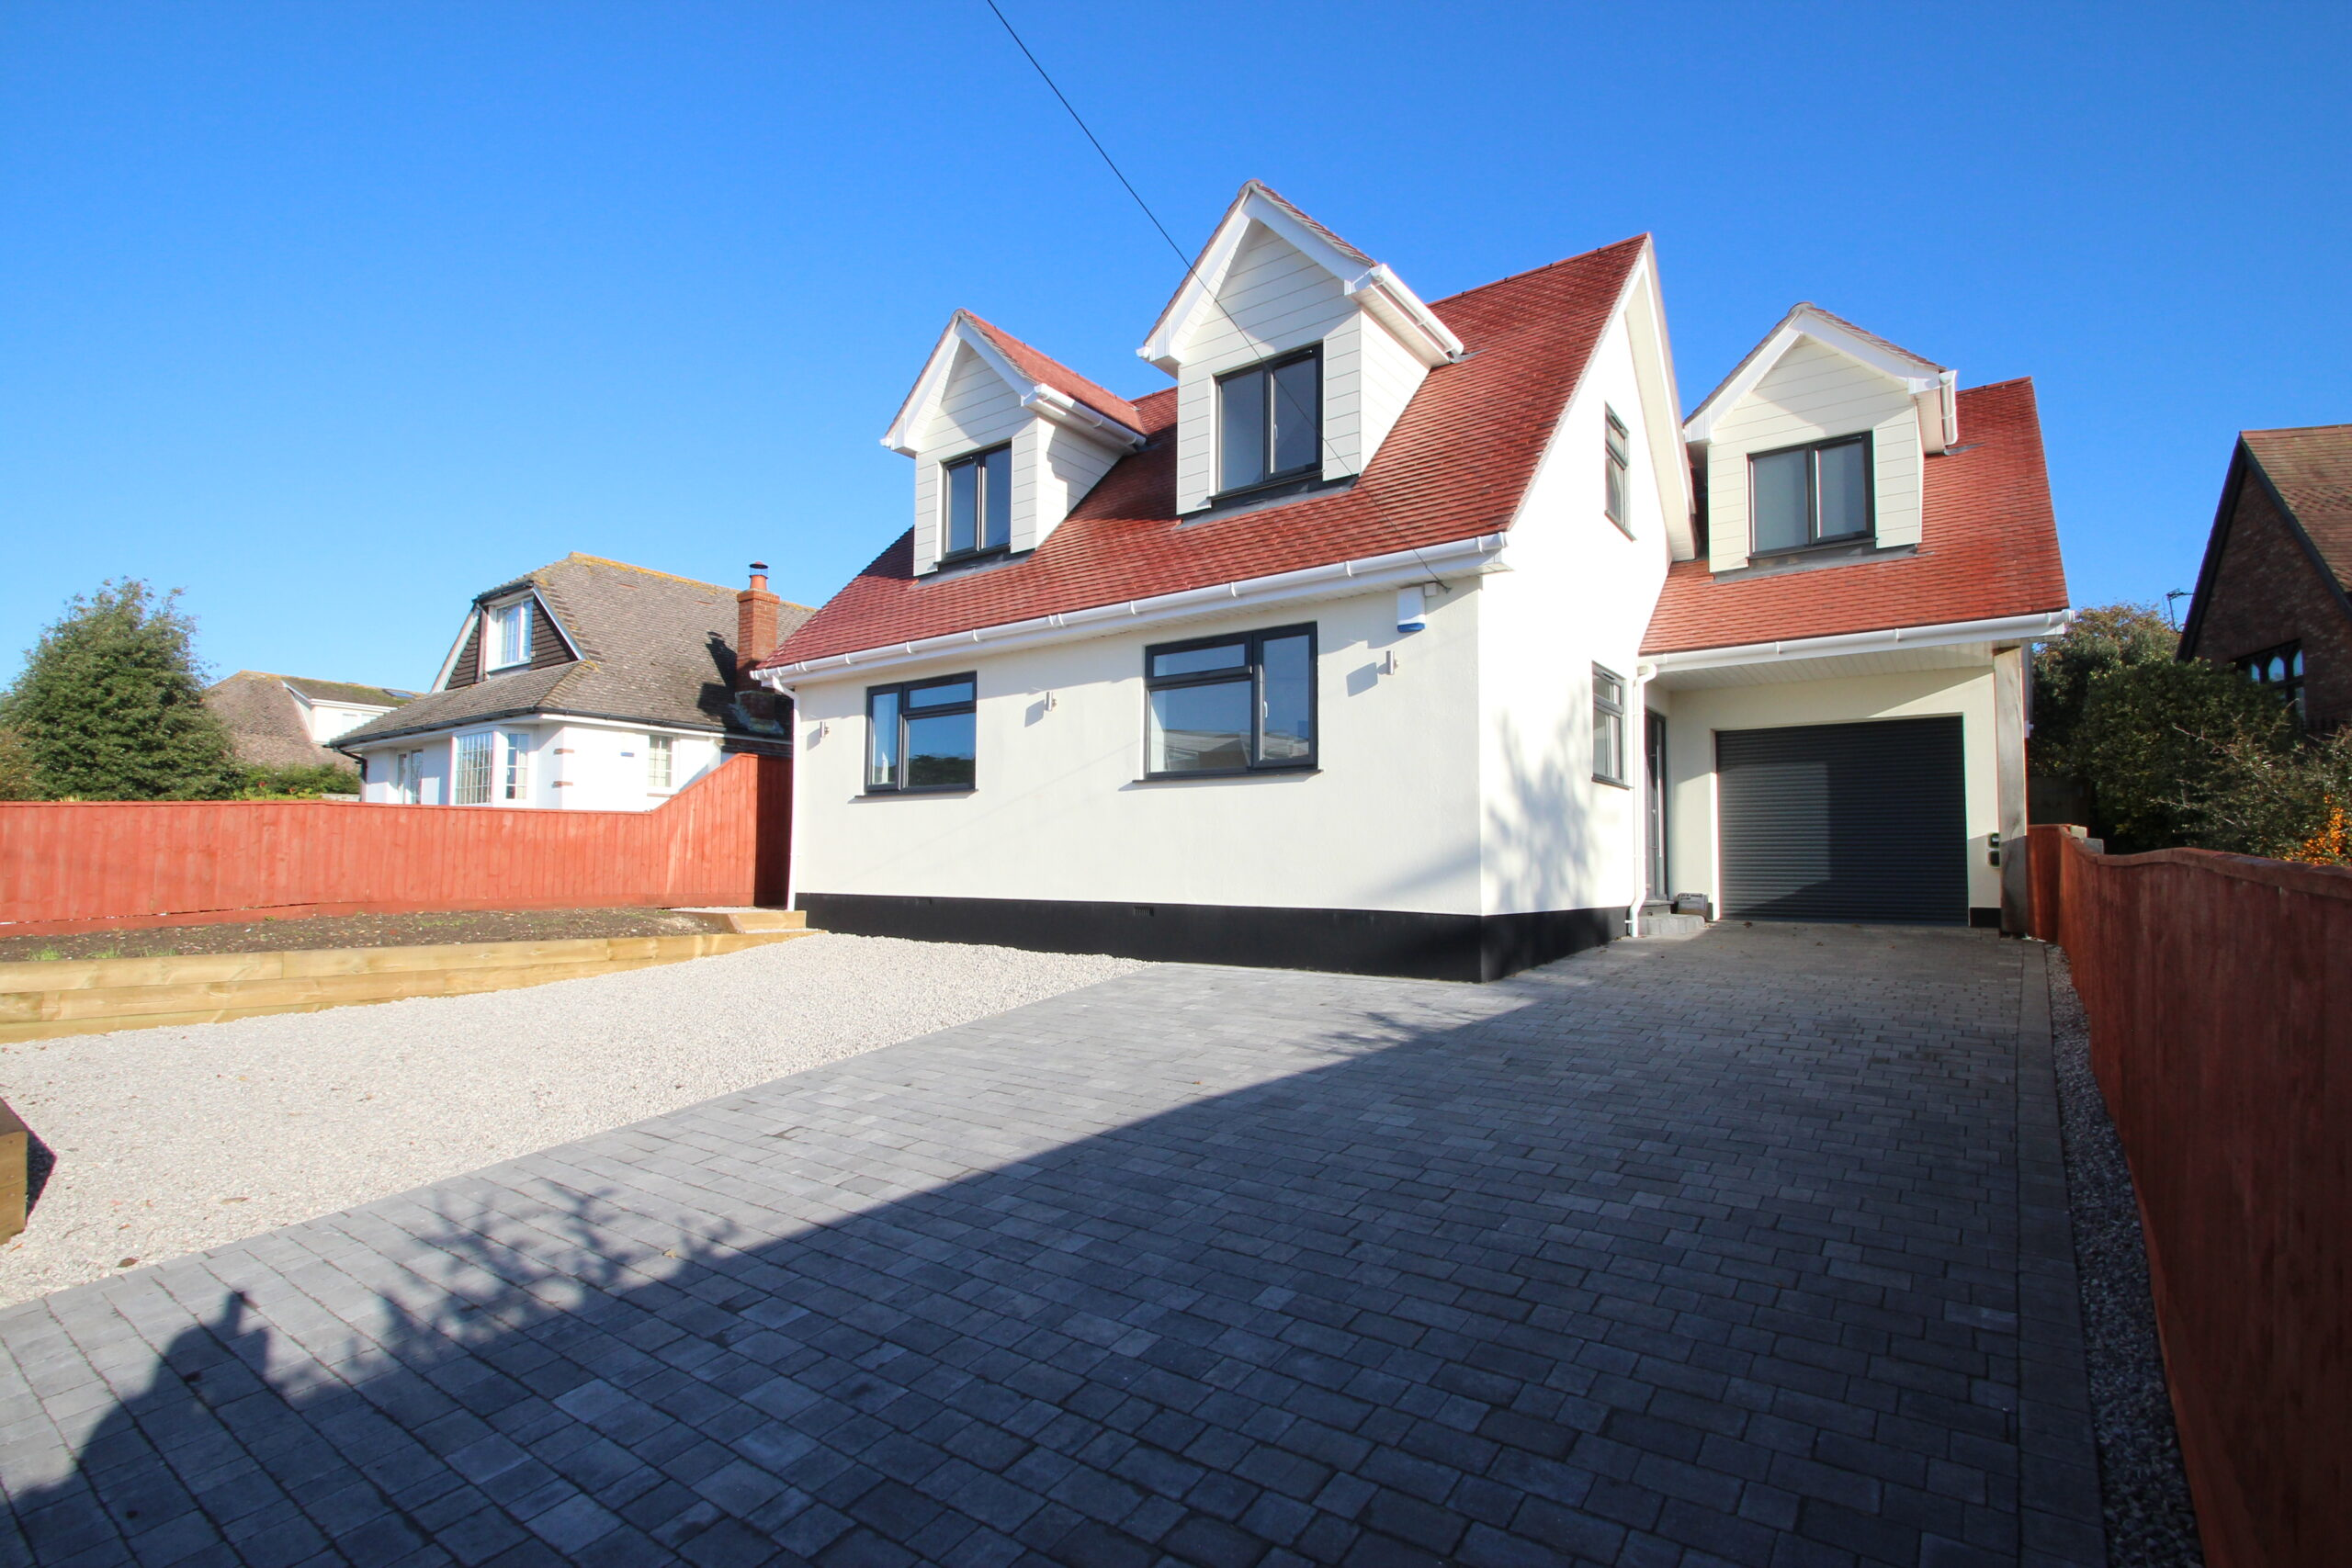 4 Bedroom Chalet in Mudeford